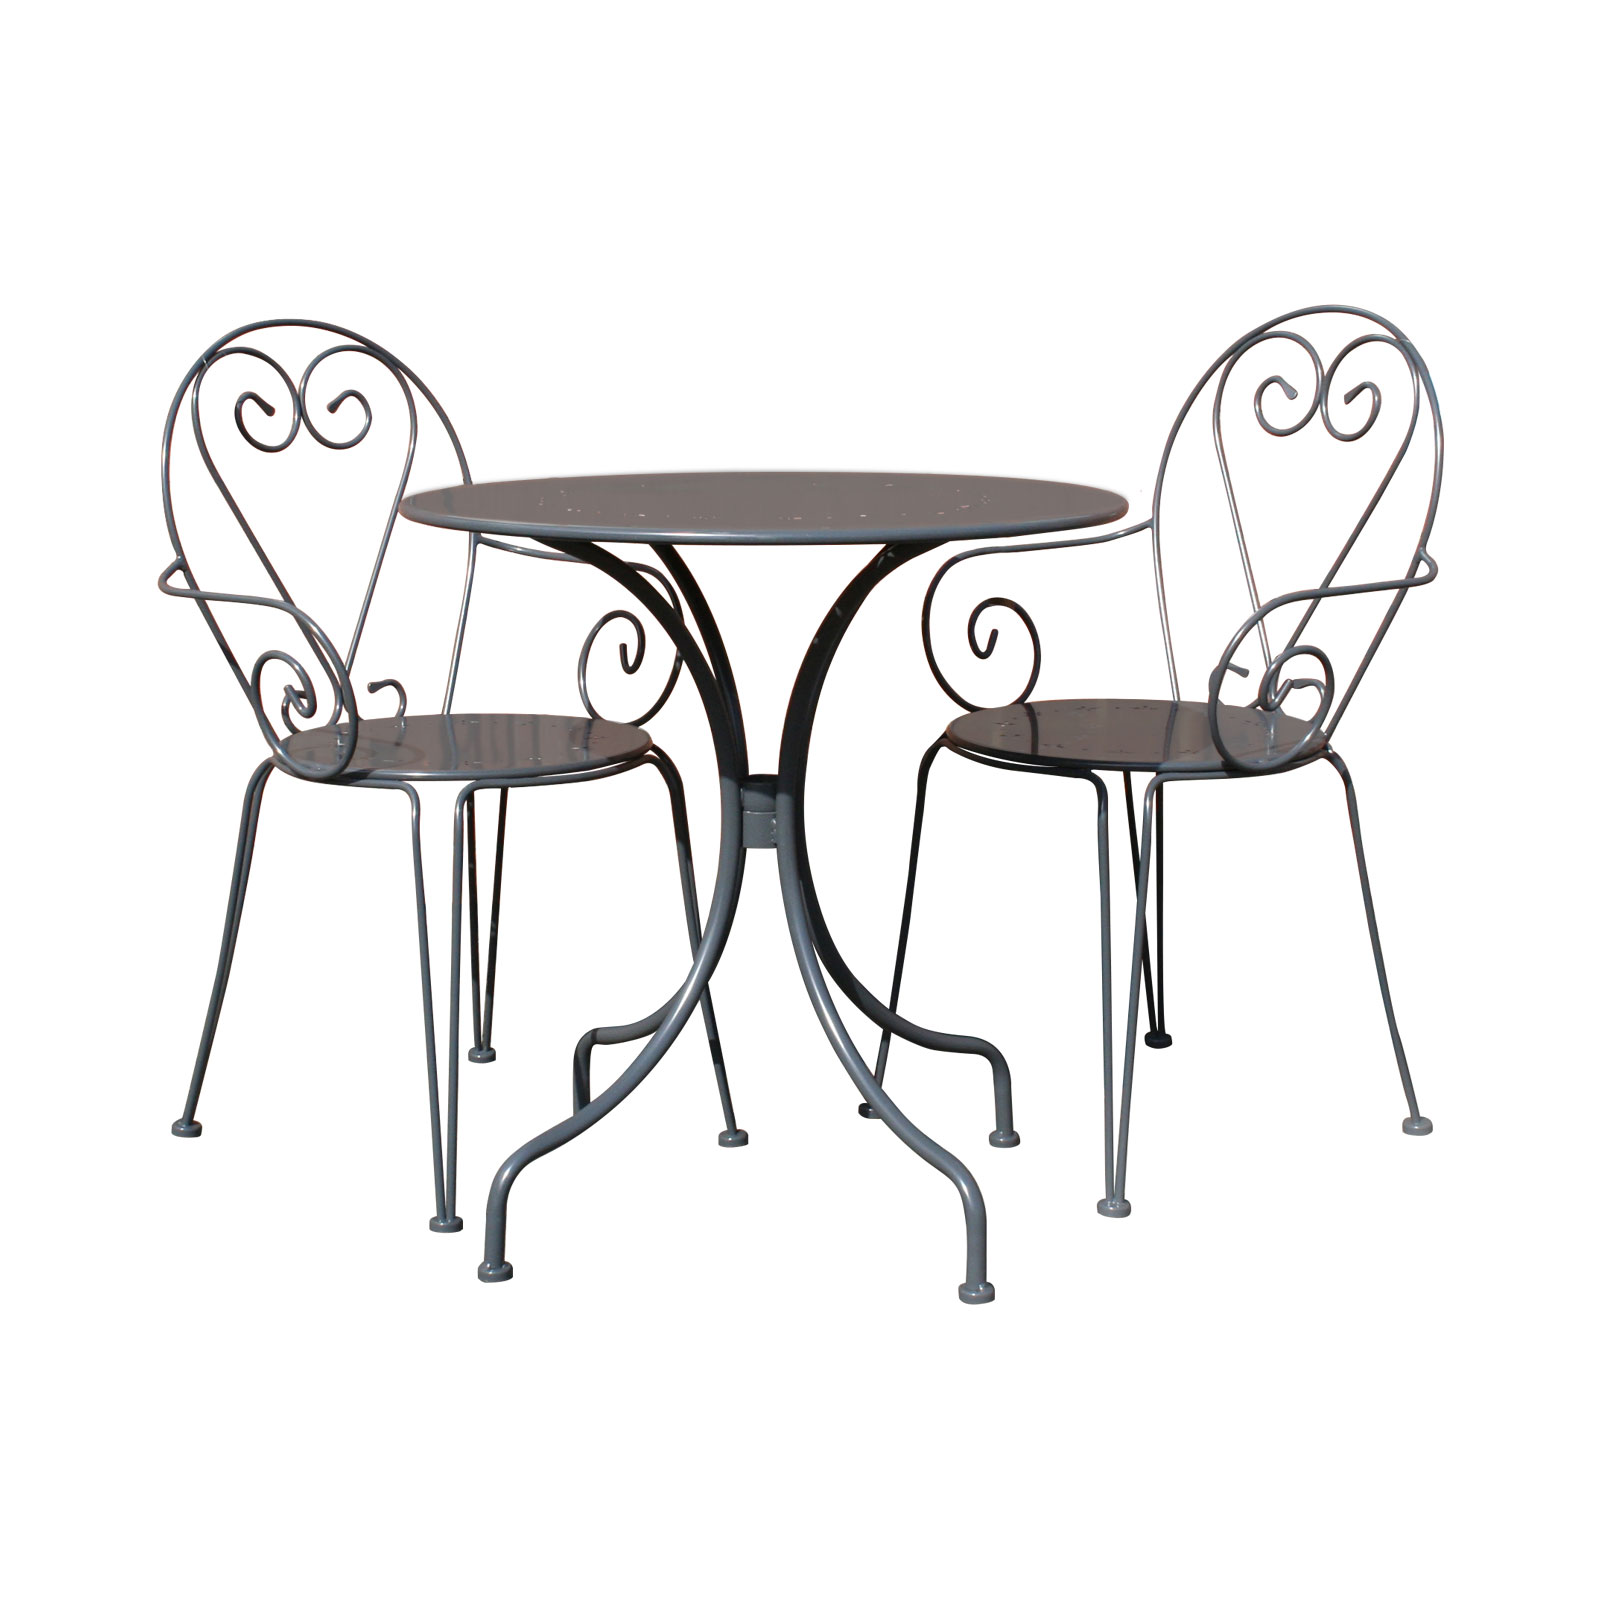 Bentley-Garden-Salon-de-jardin-style-bistro-antique-3-pieces-gris-ou-creme